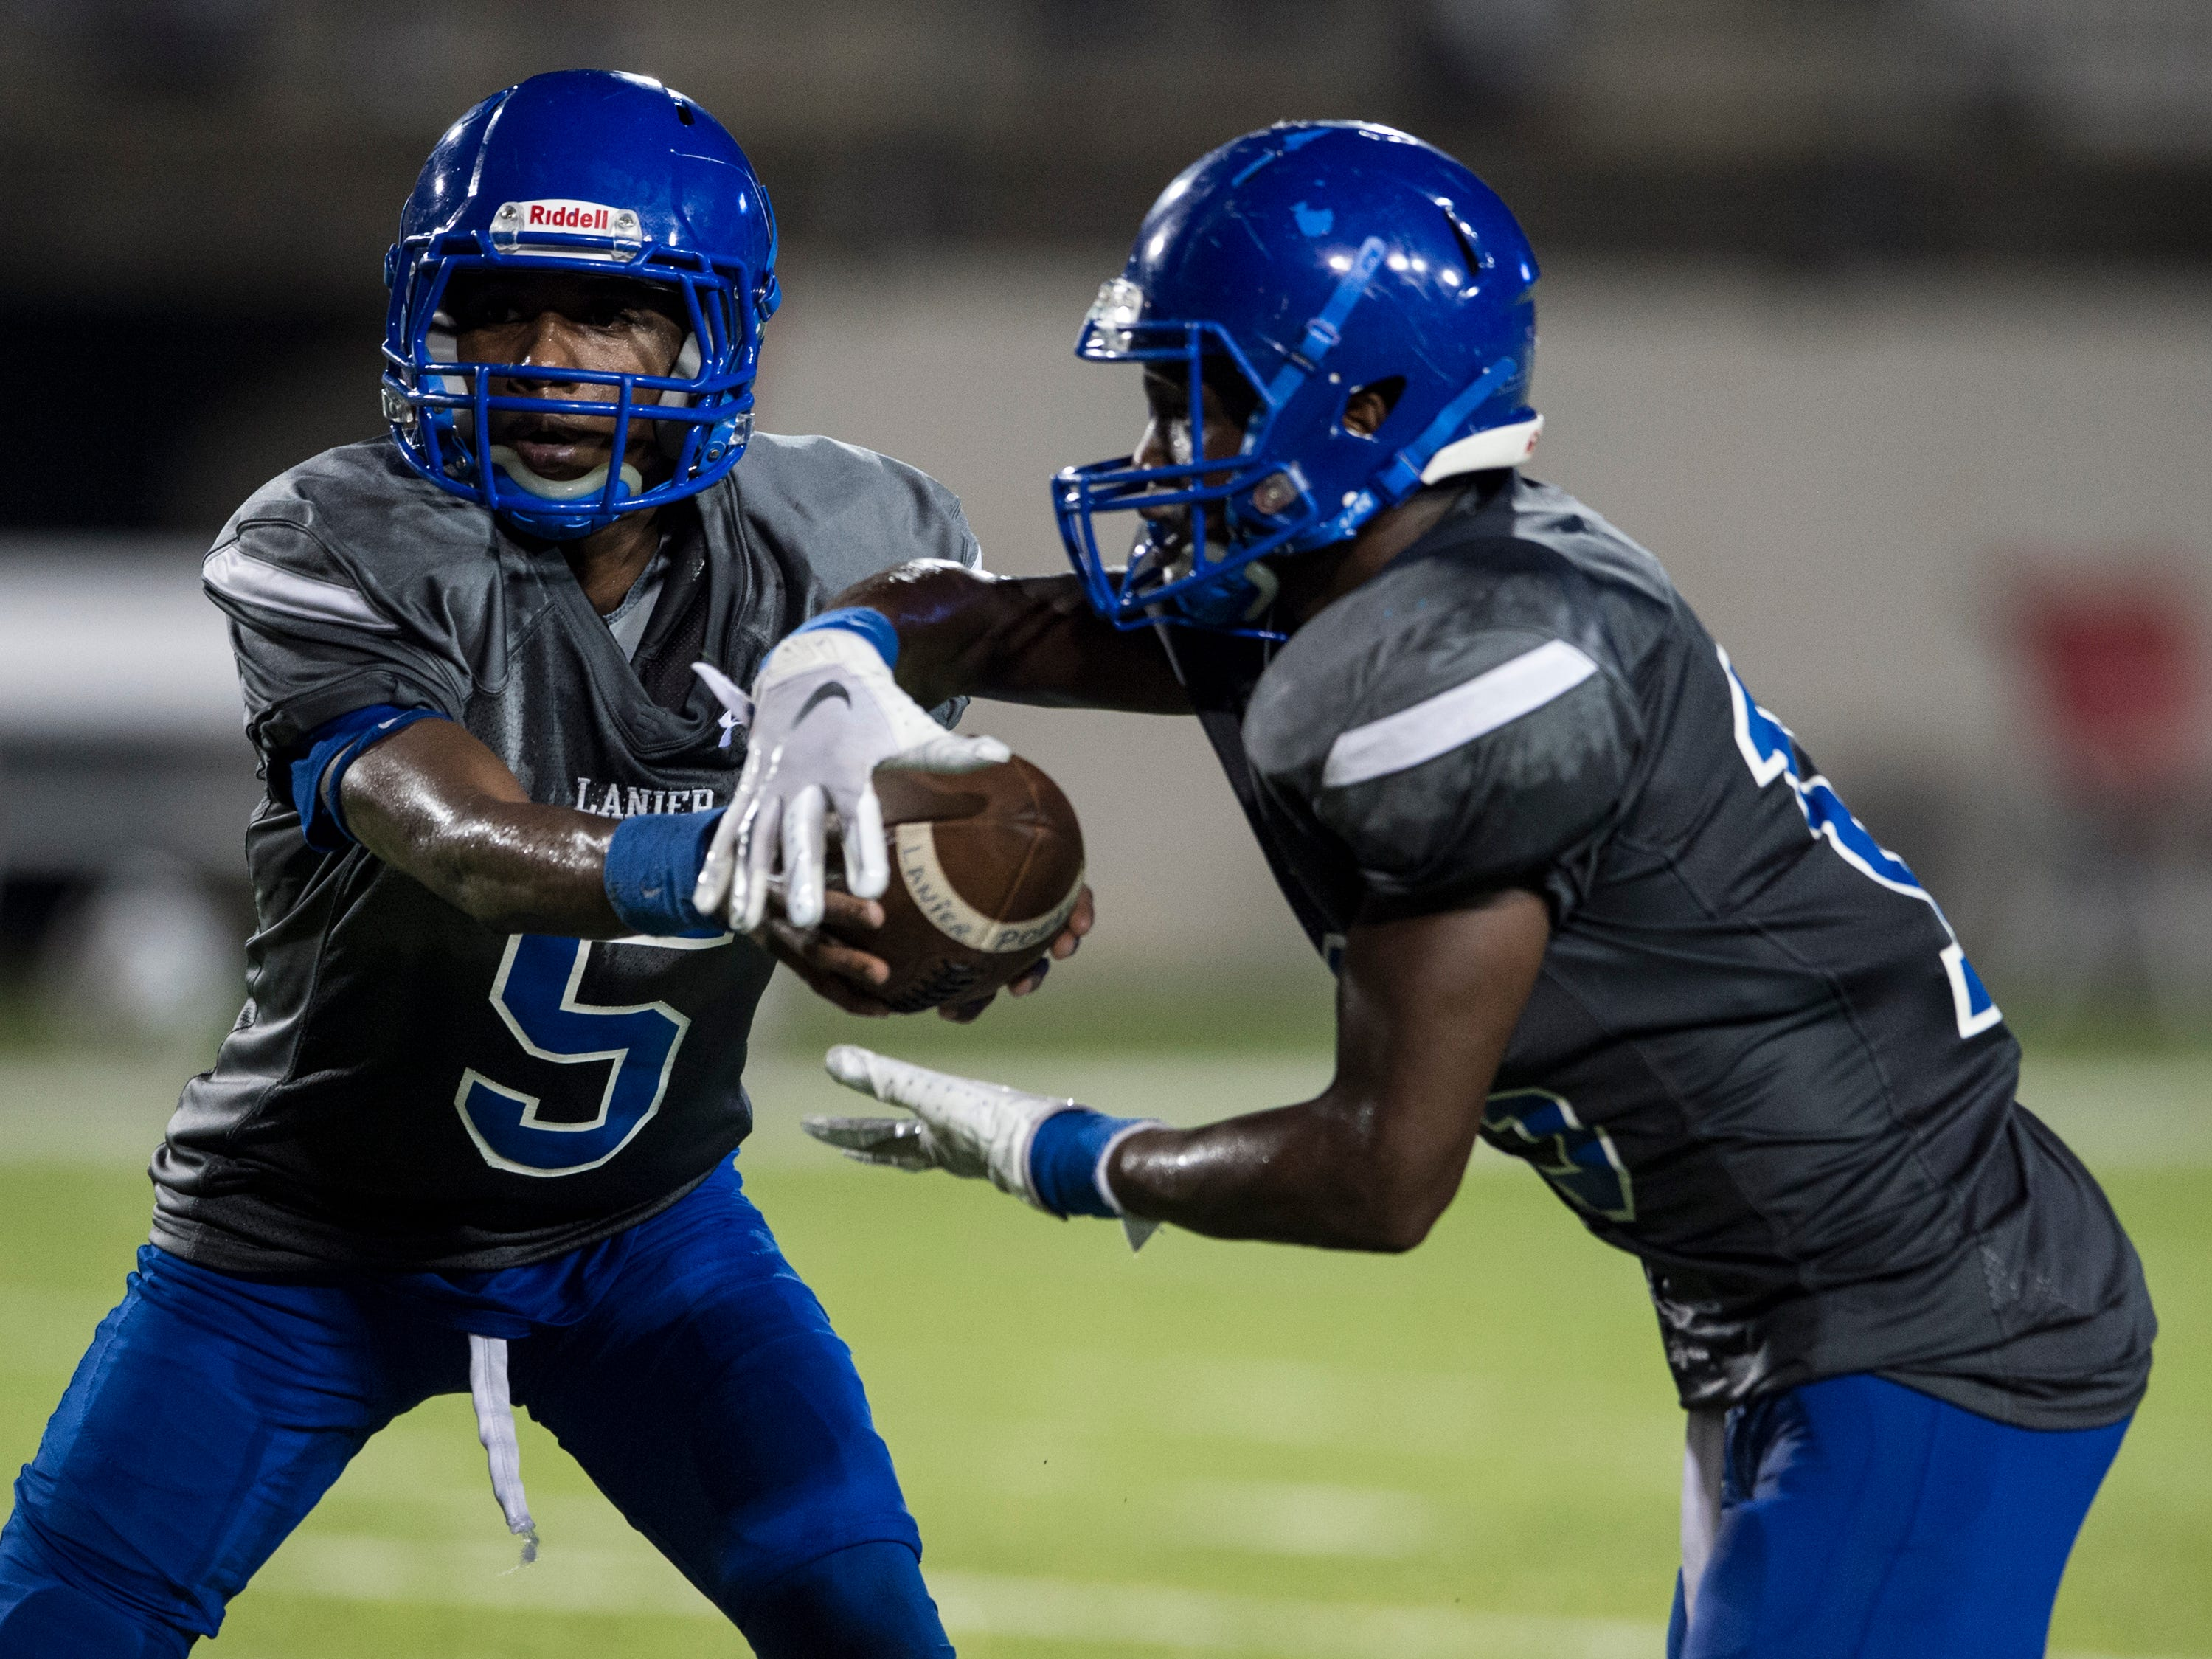 Lanier's Marquarius Moore (5) hands the ball off to Jacory Merritt (15) at Cramton Bowl in Montgomery, Ala., on Friday, Sept. 21, 2018. Lanier defeated Park Crossing 35-28.